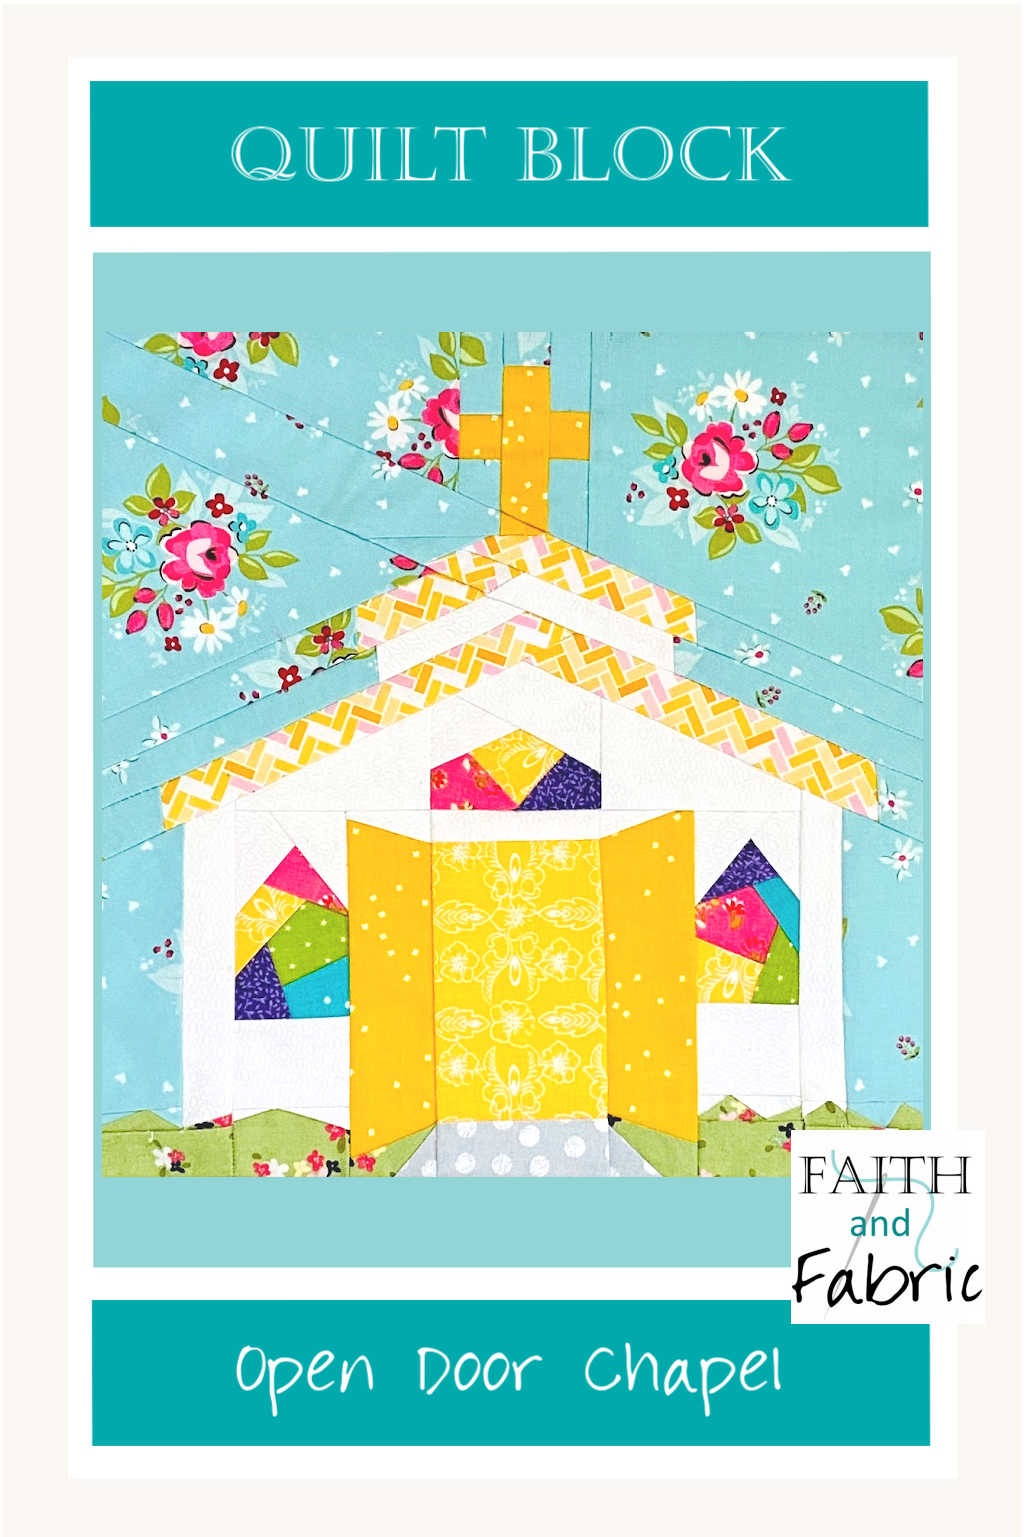 "There's nothing more welcoming than having the doors thrown open wide when you arrive, and that warm sentiment is captured in this chapel quilt block. The doors stand wide open, waiting for you to enter! This quilt block pattern comes in three sizes (8"", 10"", and 12""), and includes a bonus coloring page."